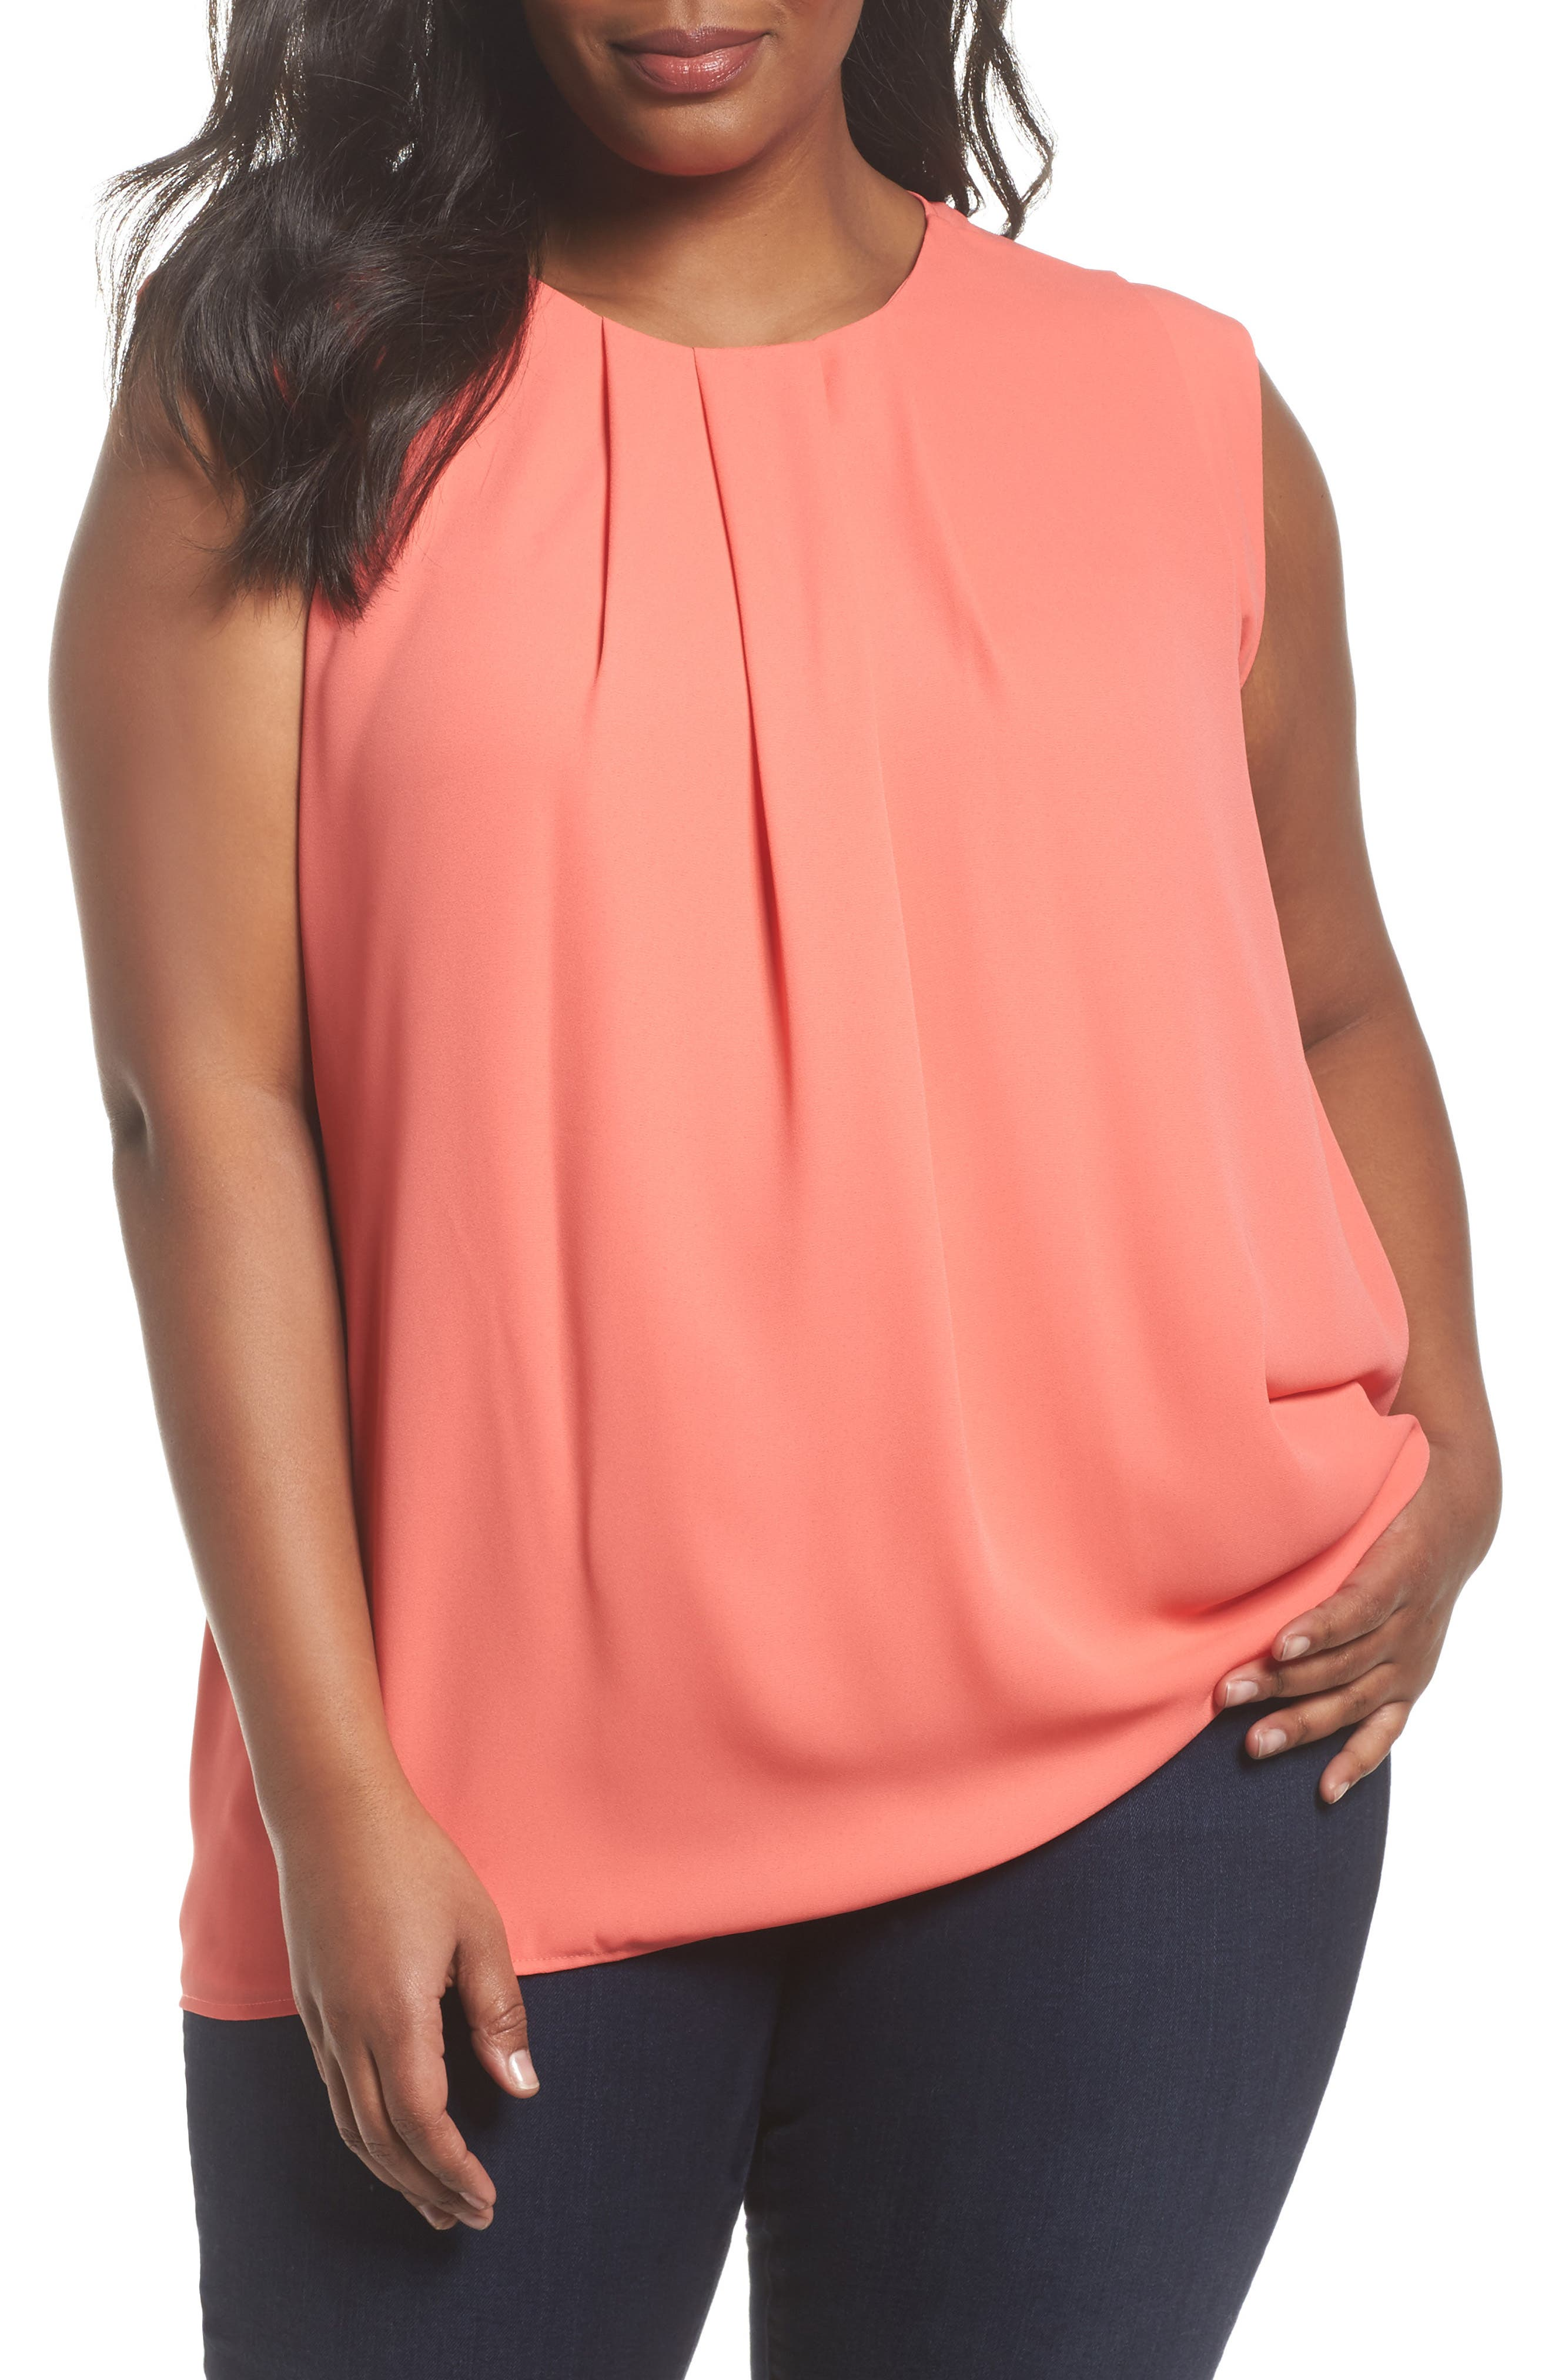 Alternate Image 1 Selected - Vince Camuto Pleated Blouse (Plus Size)